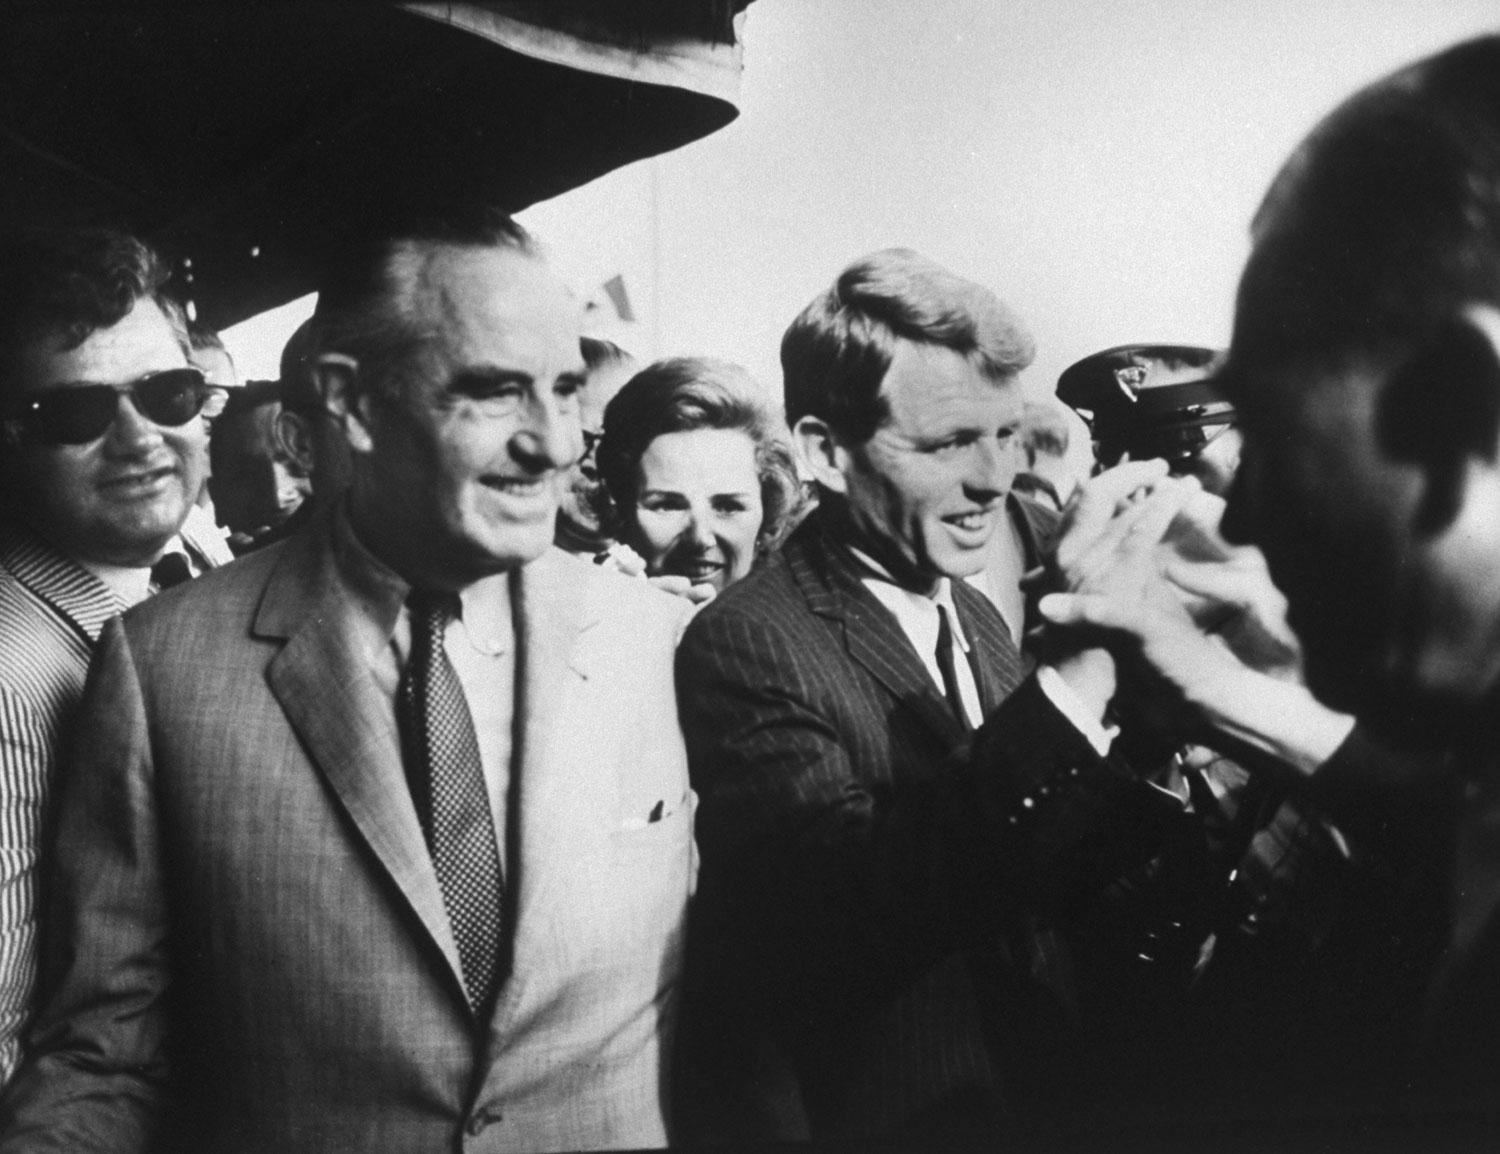 Robert F. Kennedy (right), his wife Ethell and Democratic stalwart Averell Harriman at a reception for Jackie Kennedy during the 1964 Democratic National Convention in Atlantic City, New Jersey.